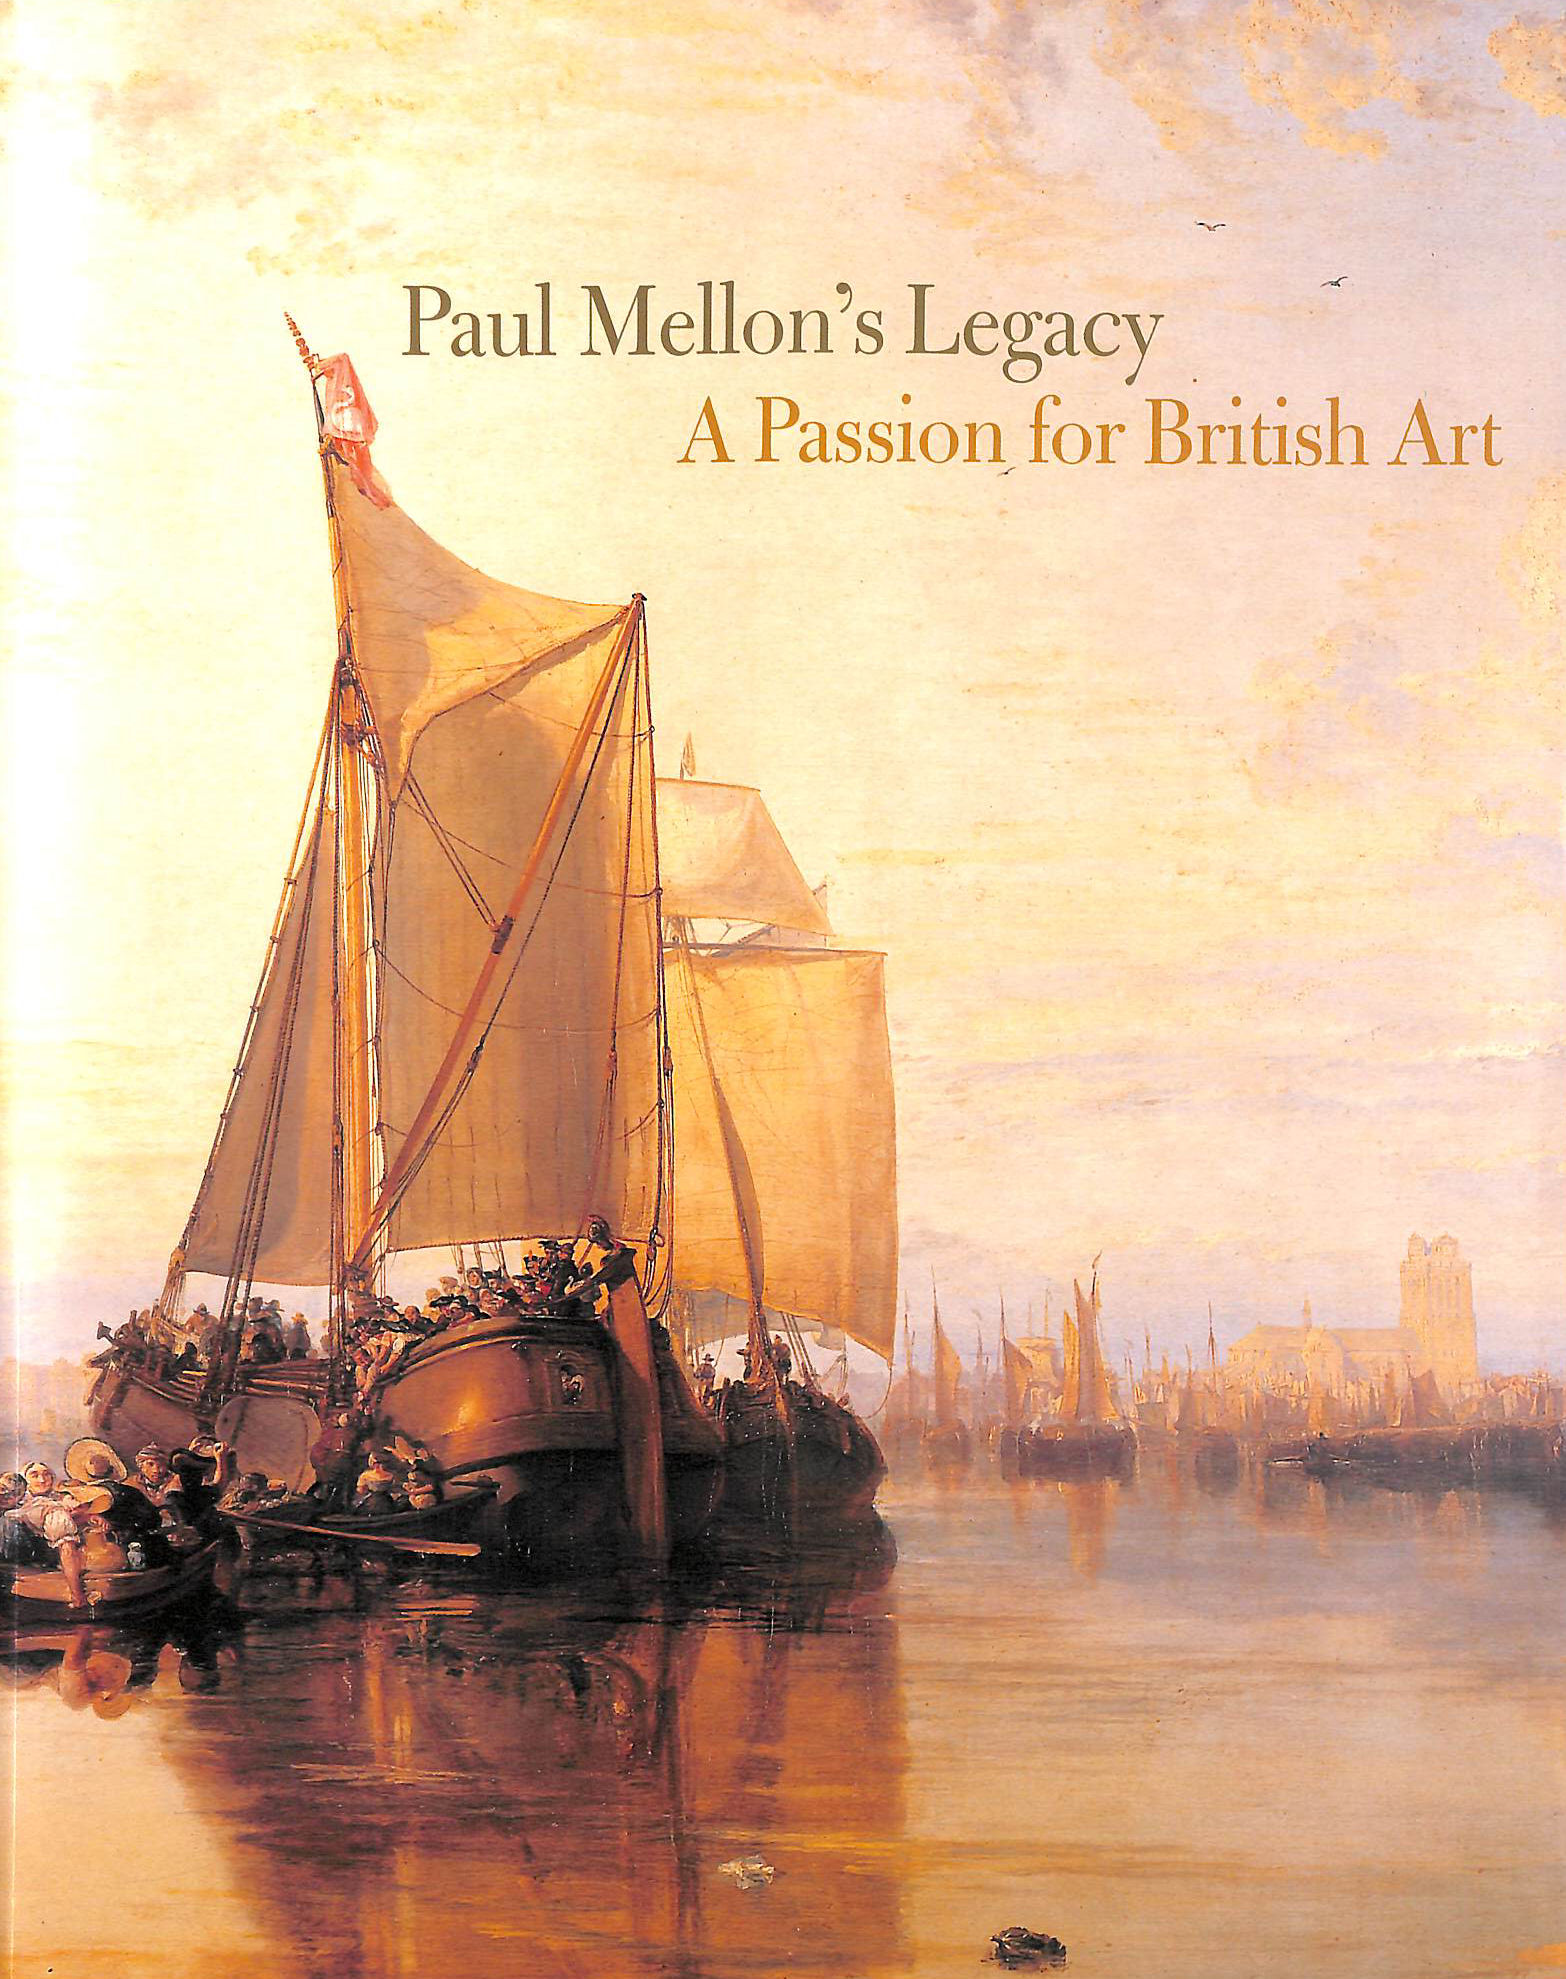 Image for Paul Mellon's Legacy: A Passion for British Art - Masterpieces from the Yale Center for British Art